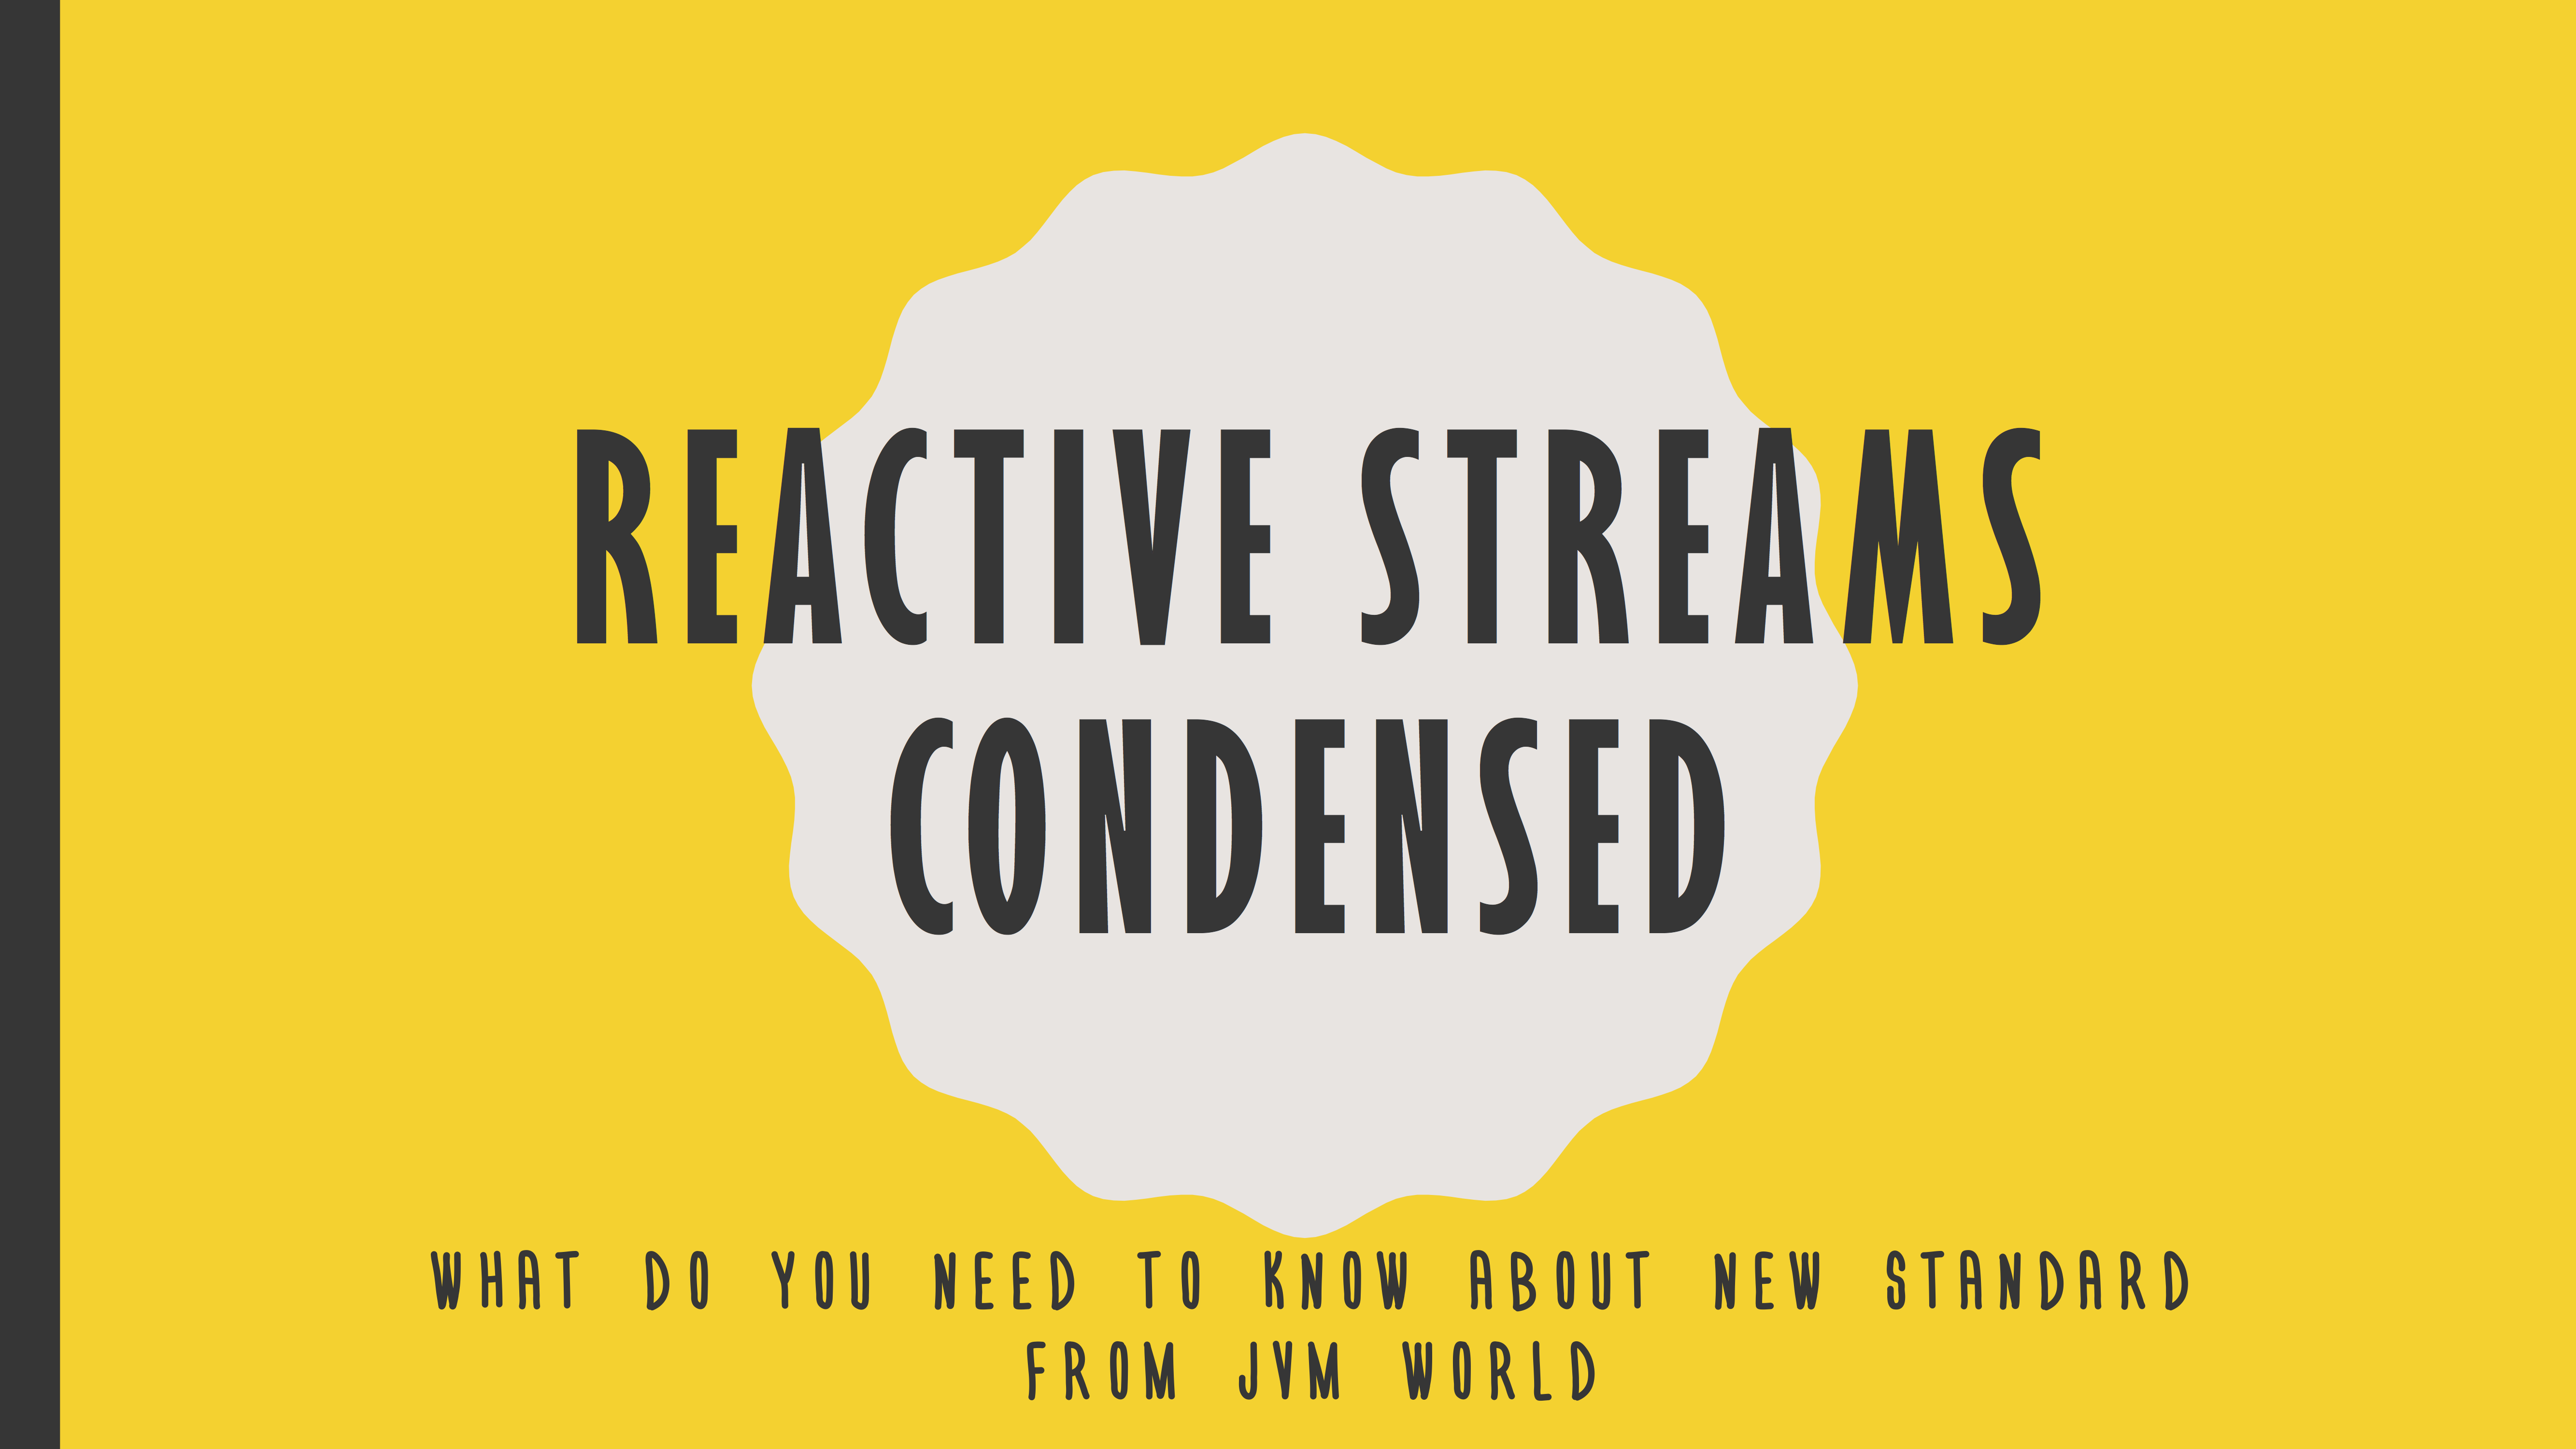 Reactive Streams is a new specification with the goal of leading different JVM languages to the new, asynchronous future.